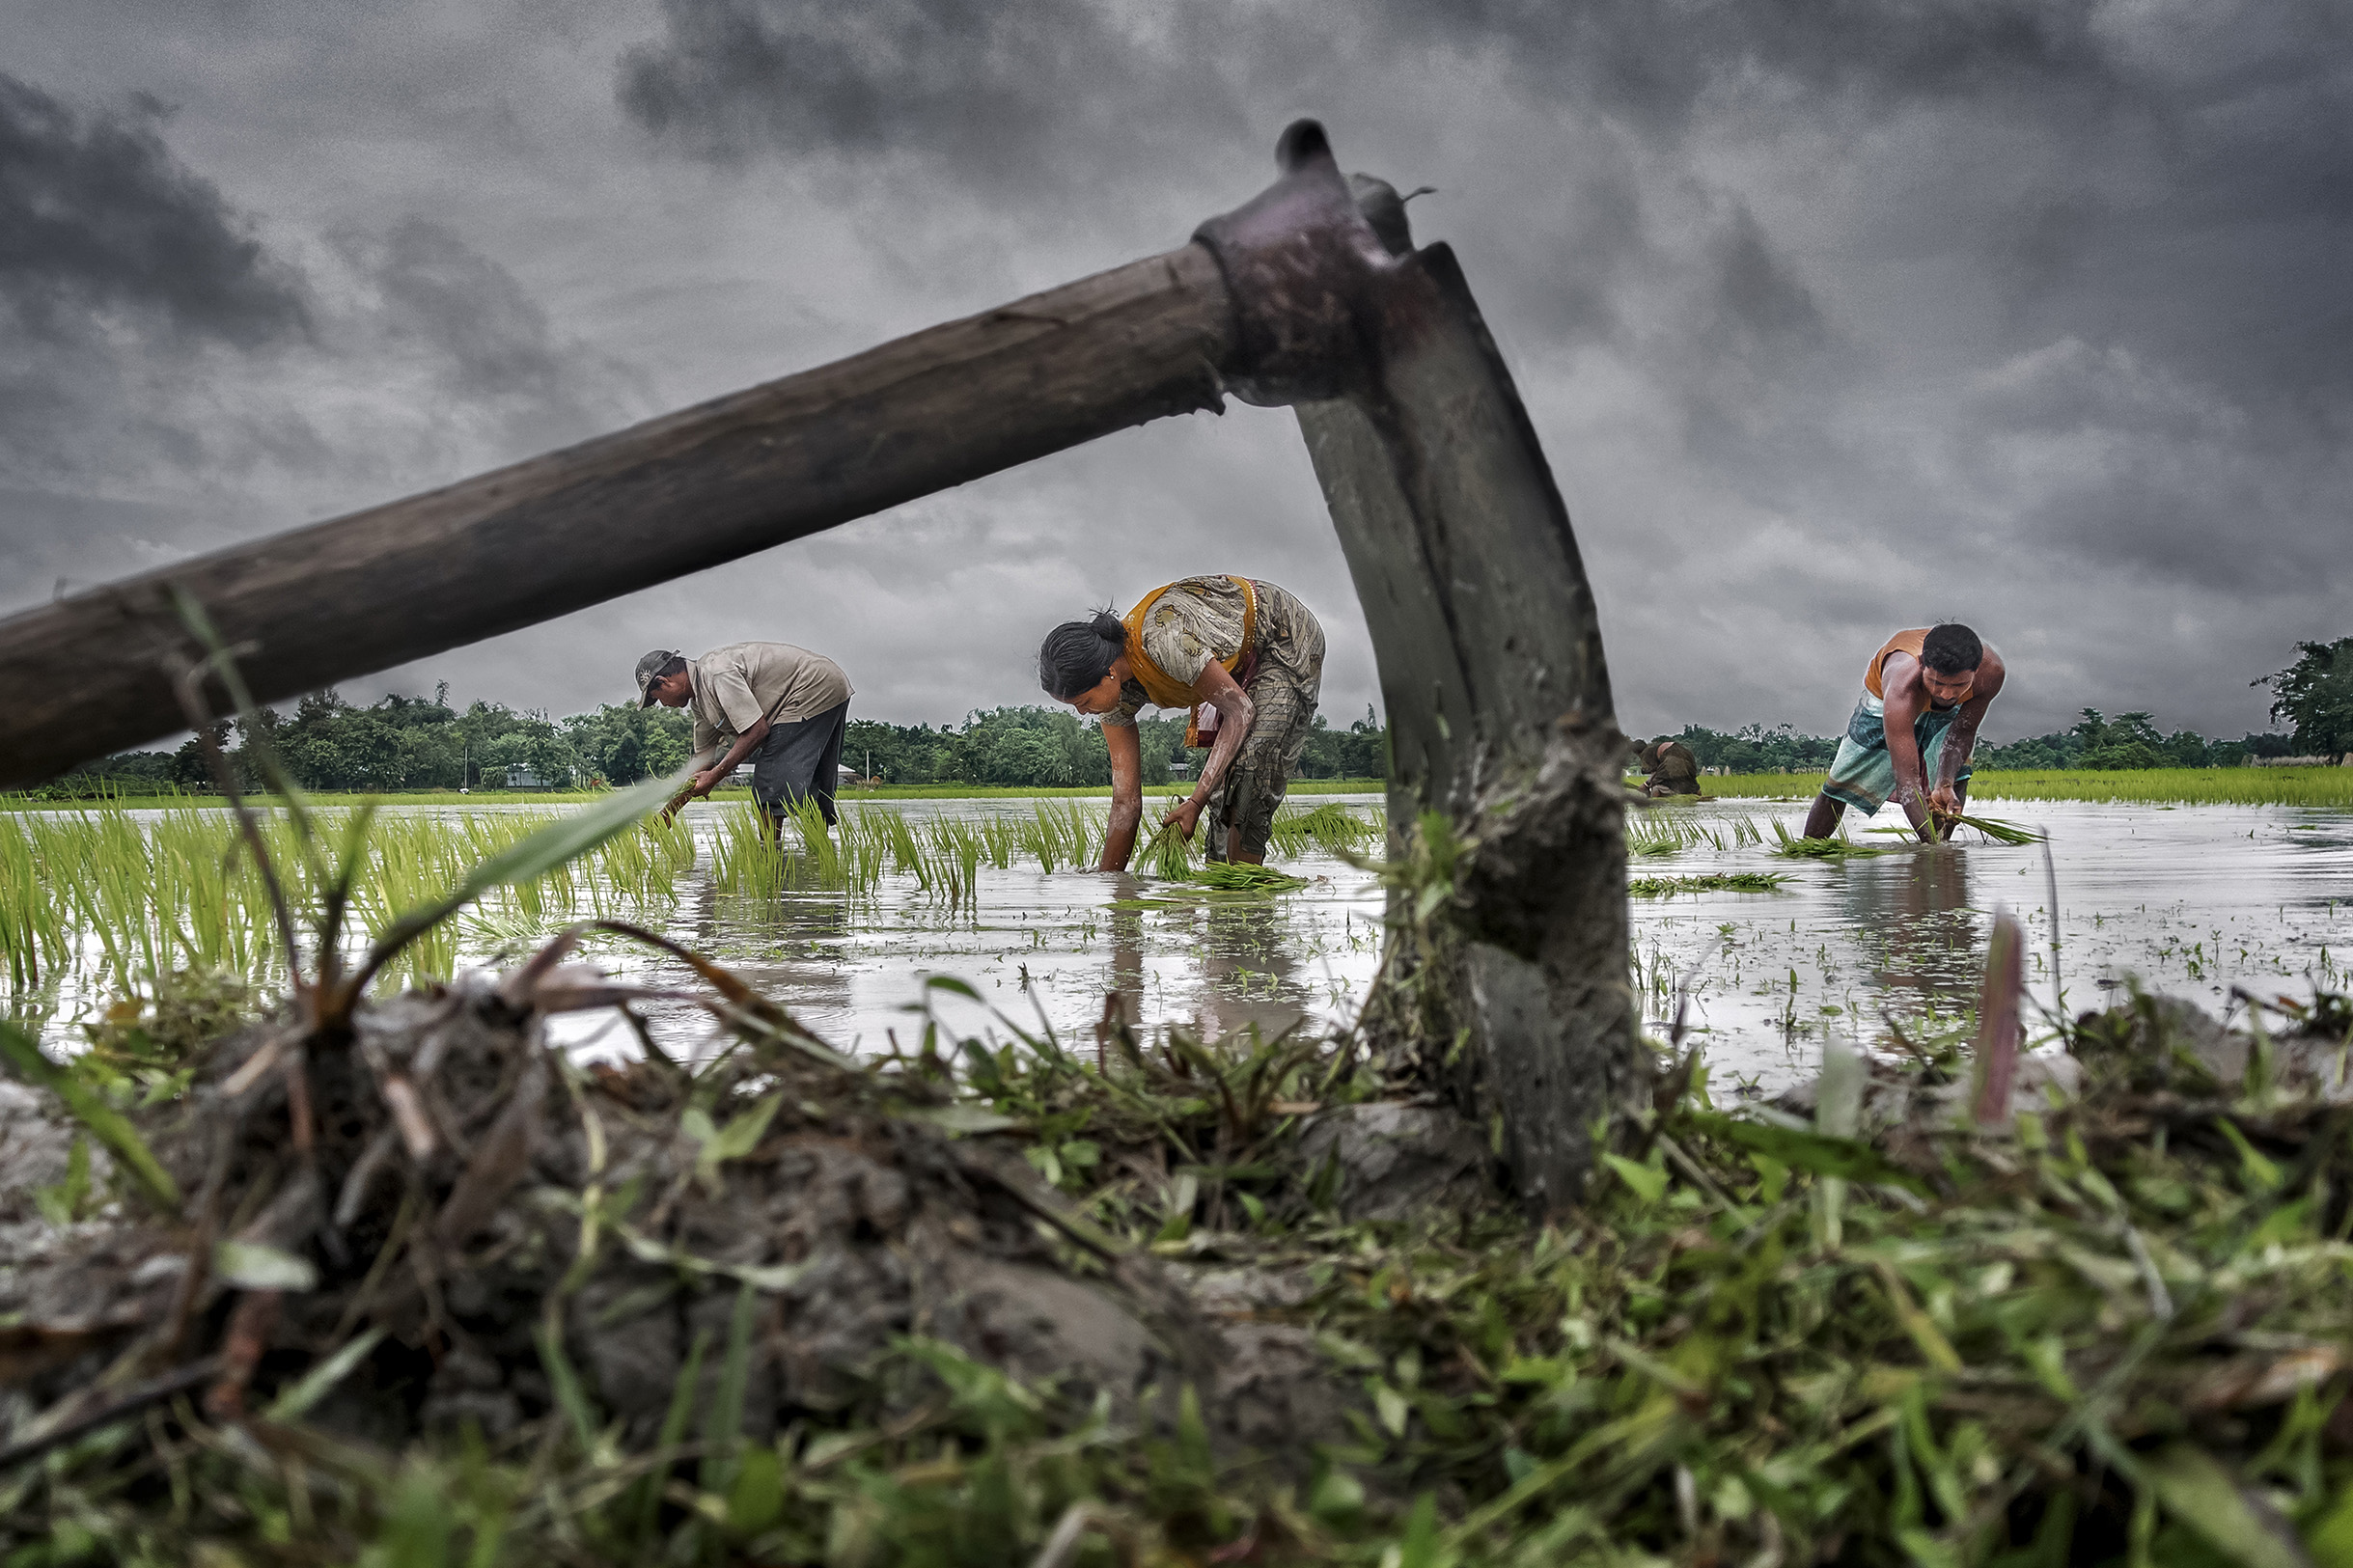 The Grand Prize Winner, by Sujan Sarkar of India, depicts farmers working in a rice paddy in West Bengal, India.